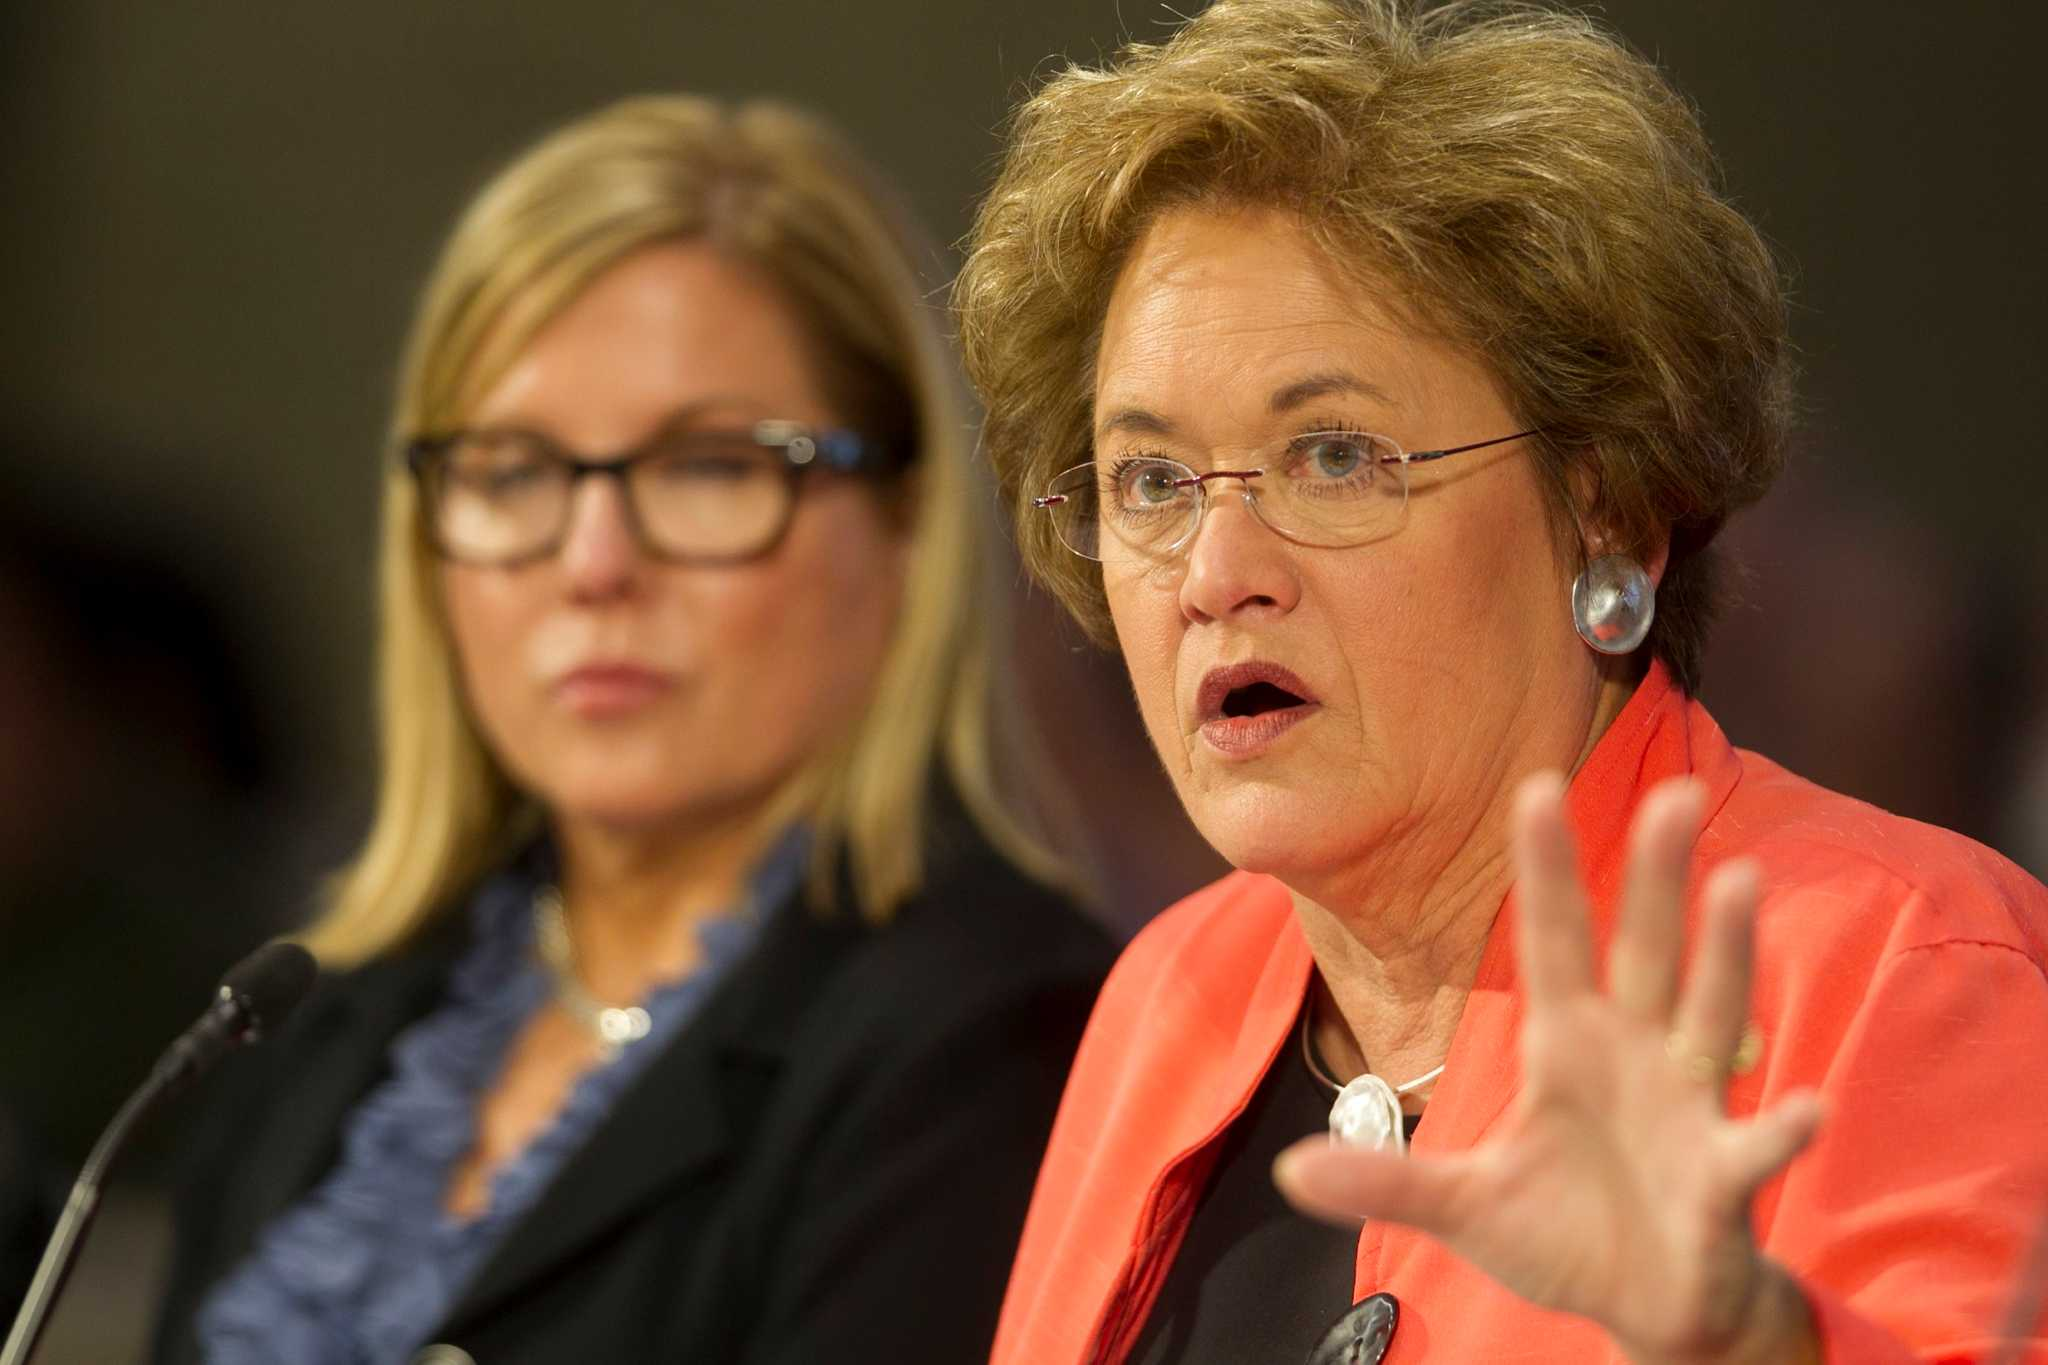 Sources Perry Offered Lehmberg Job For Resignation